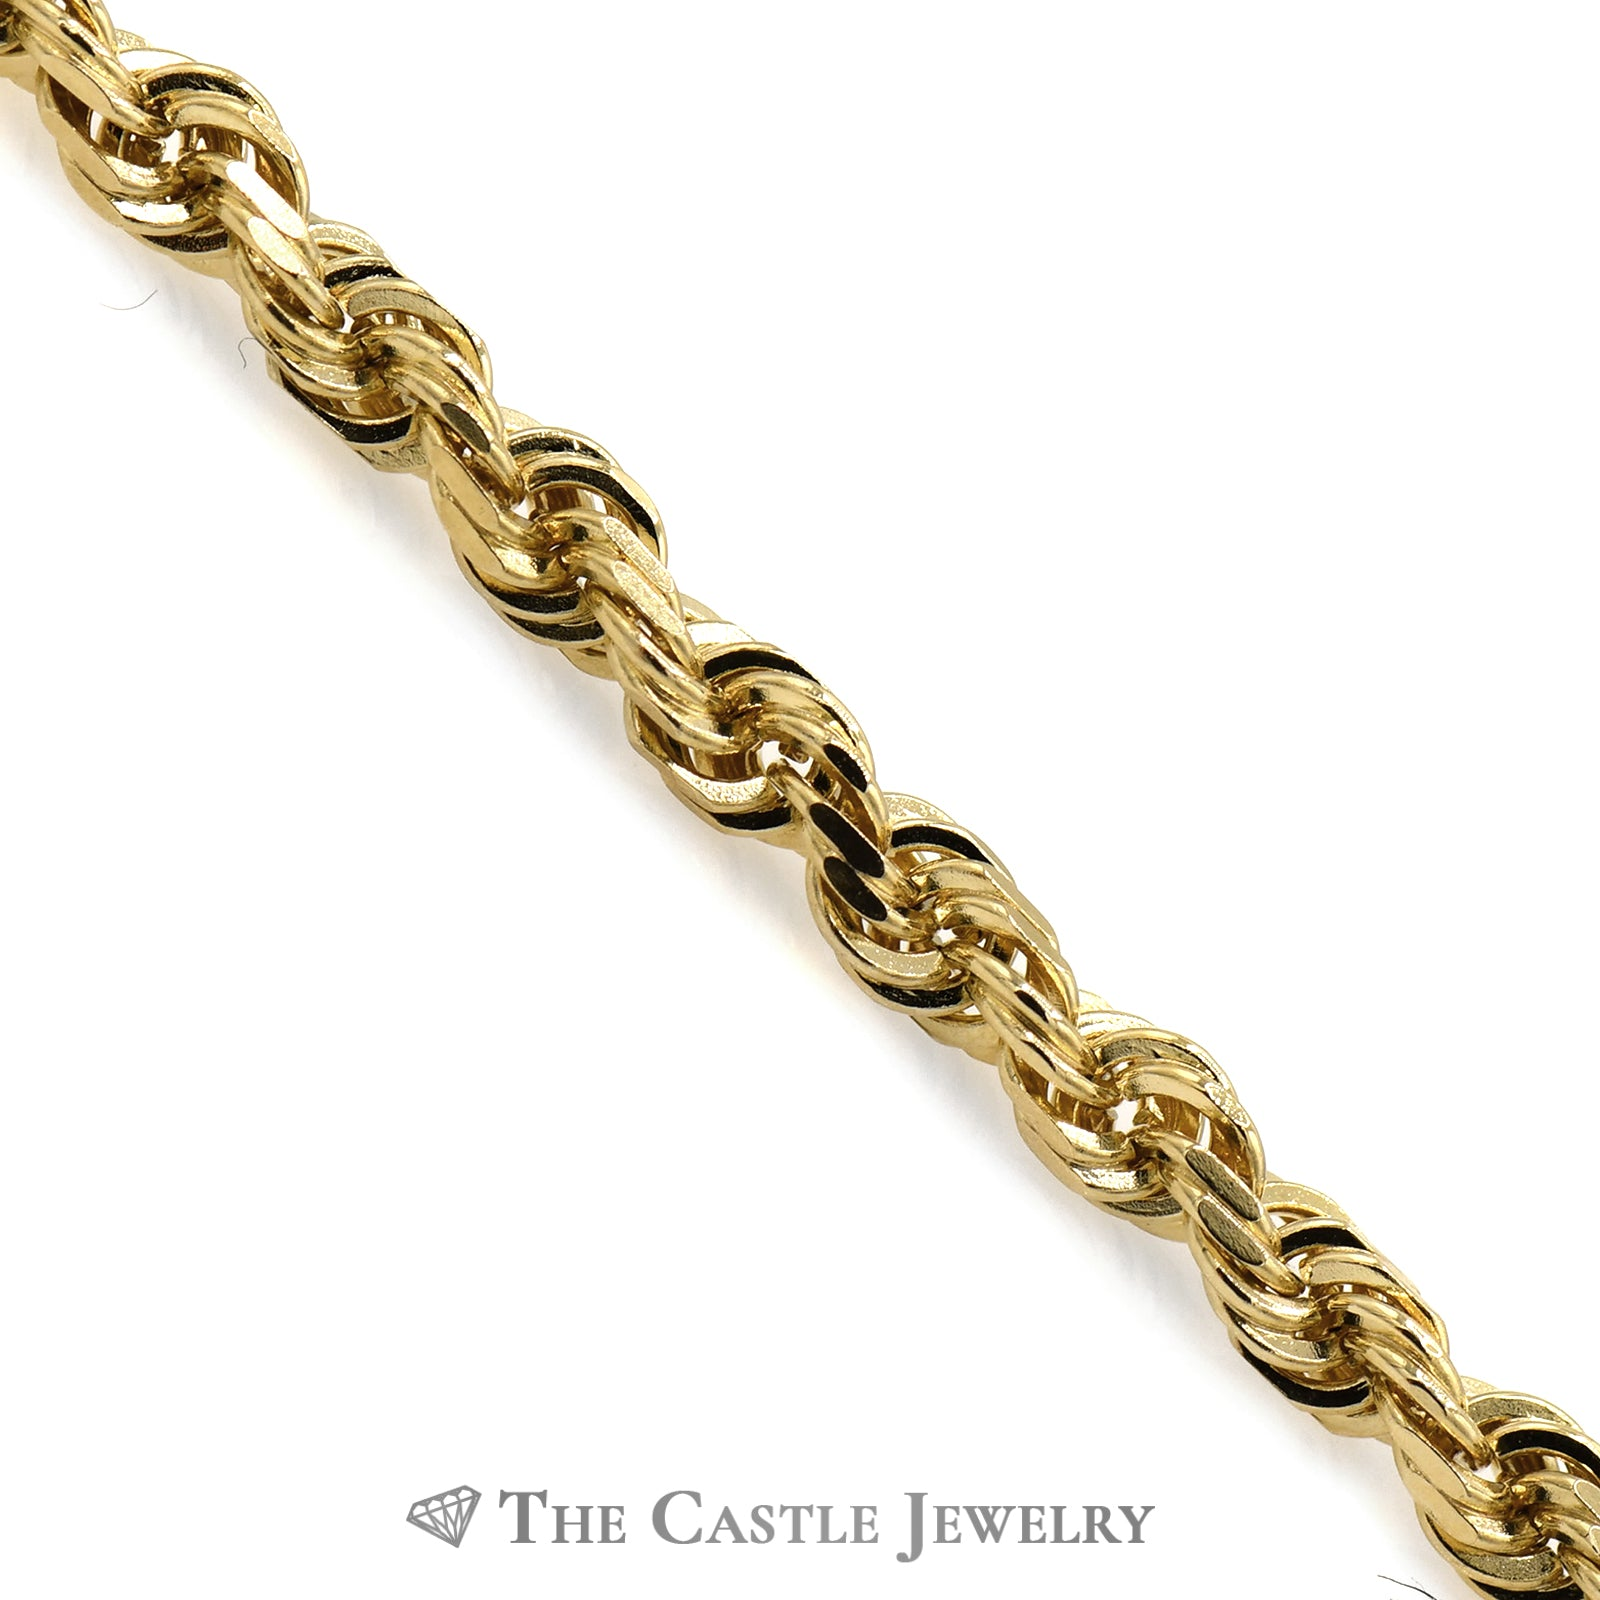 10k Yellow Gold 8 1/2 Inch Rope Bracelet